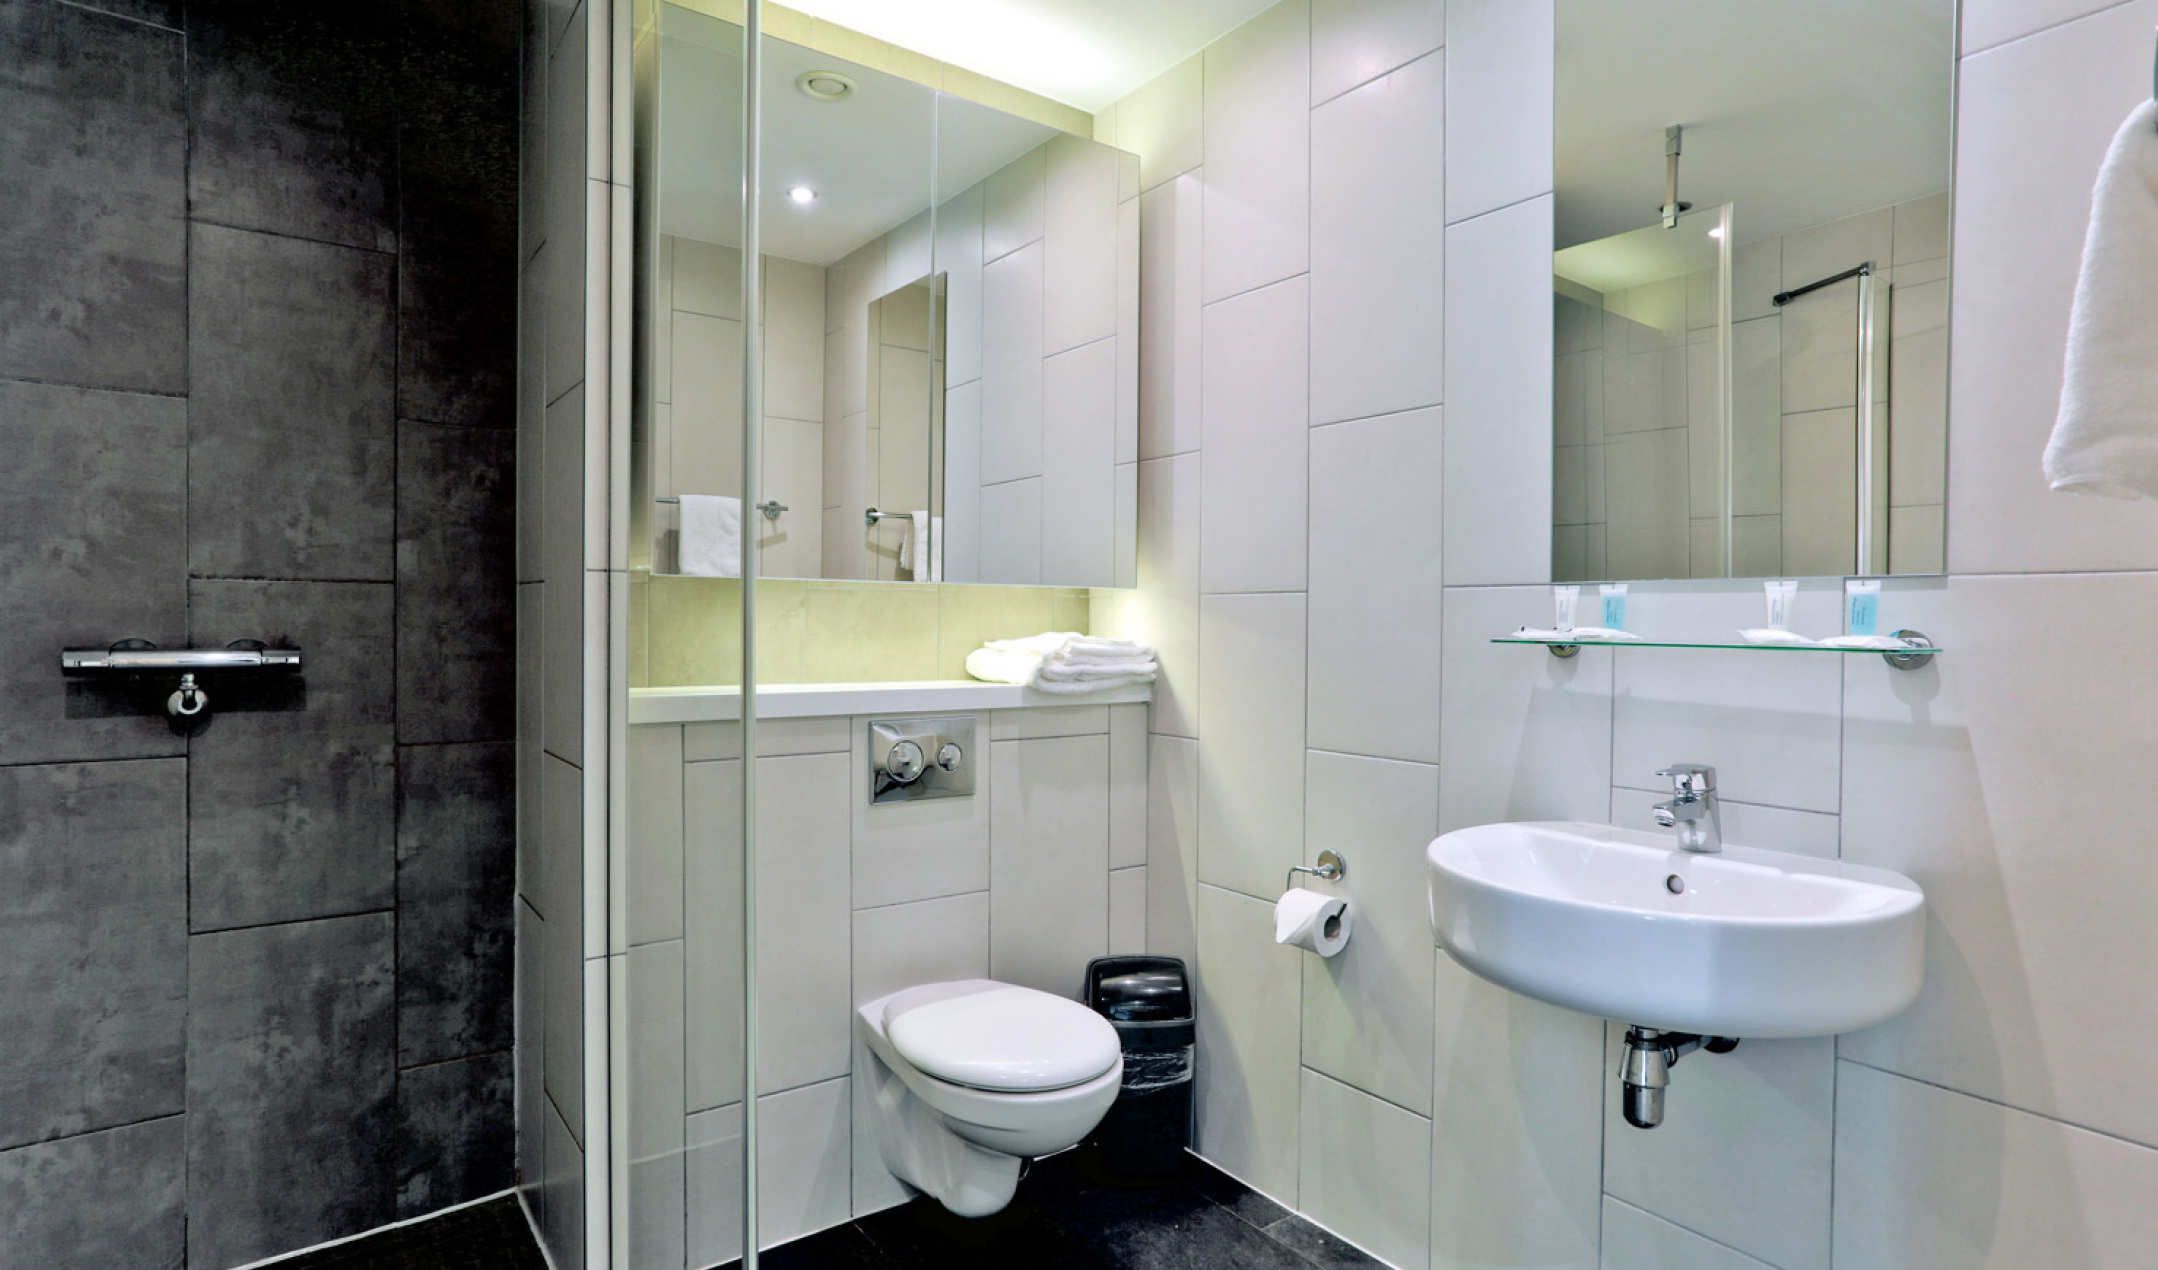 Woodward rooms with ensuite in West London